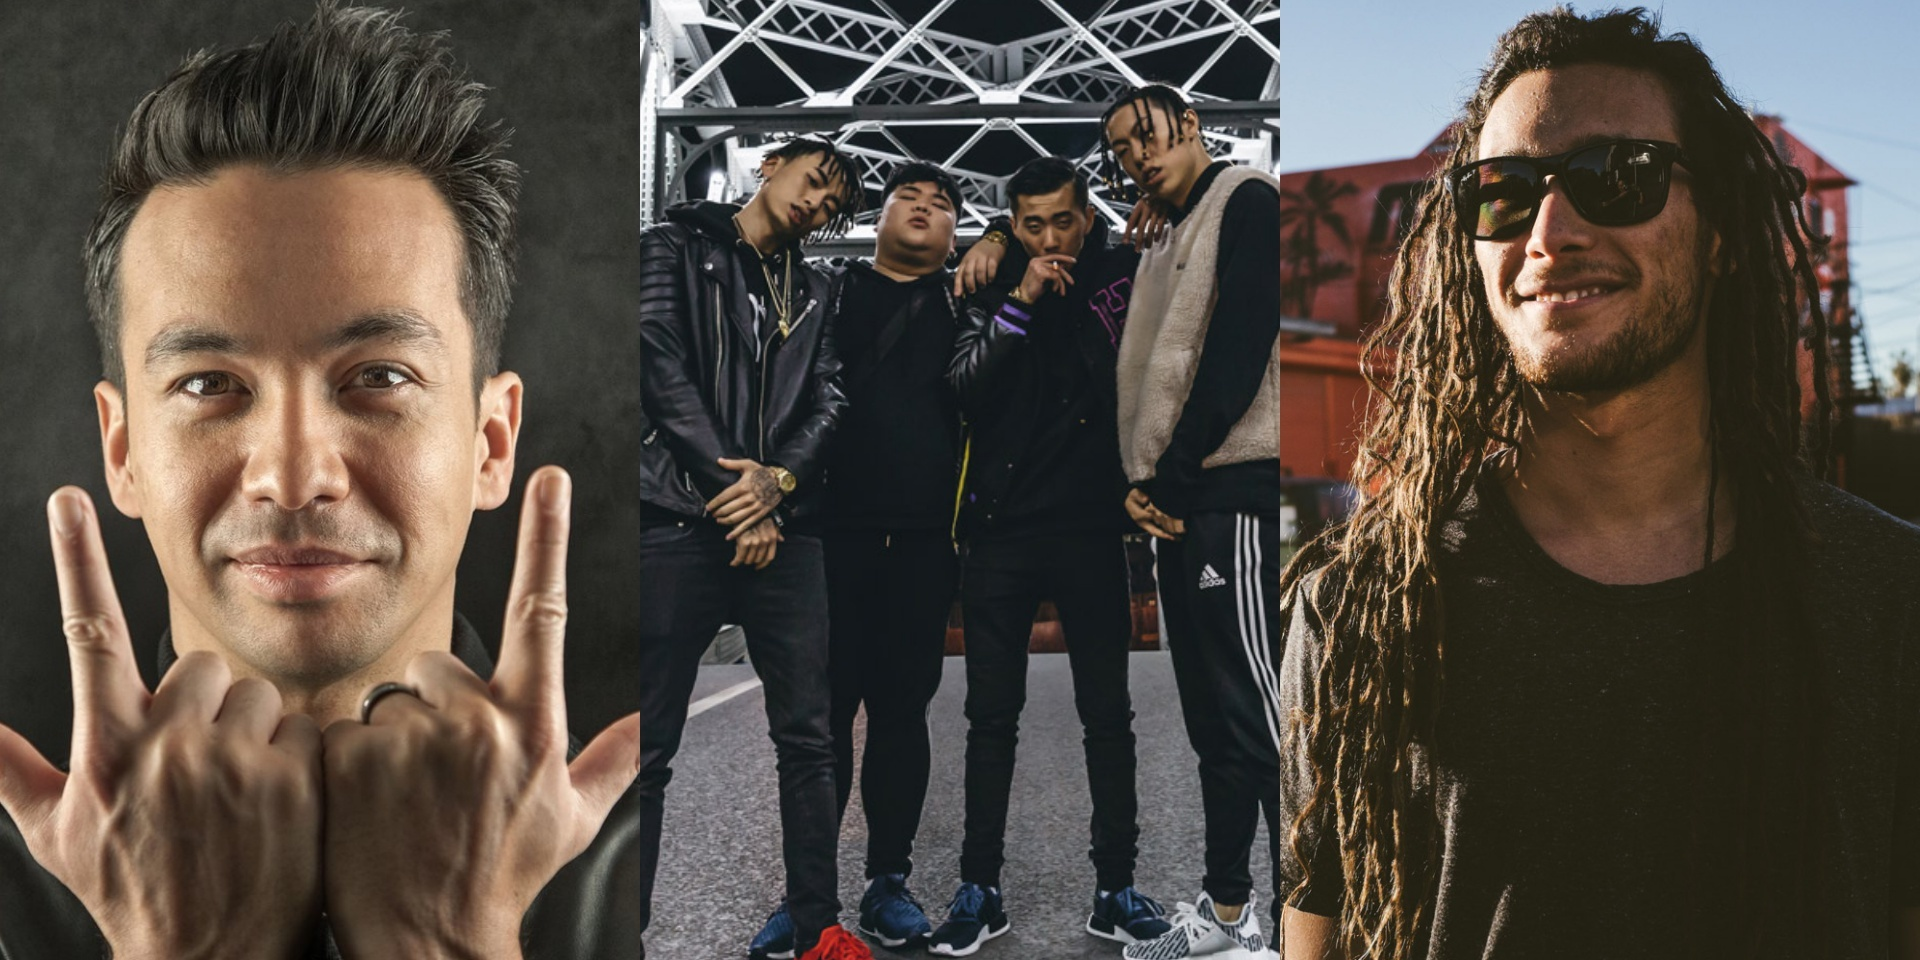 Skechers Sundown Festival 2019 announces lineup: Laidback Luke, Higher Brothers, Henry Fong and more confirmed